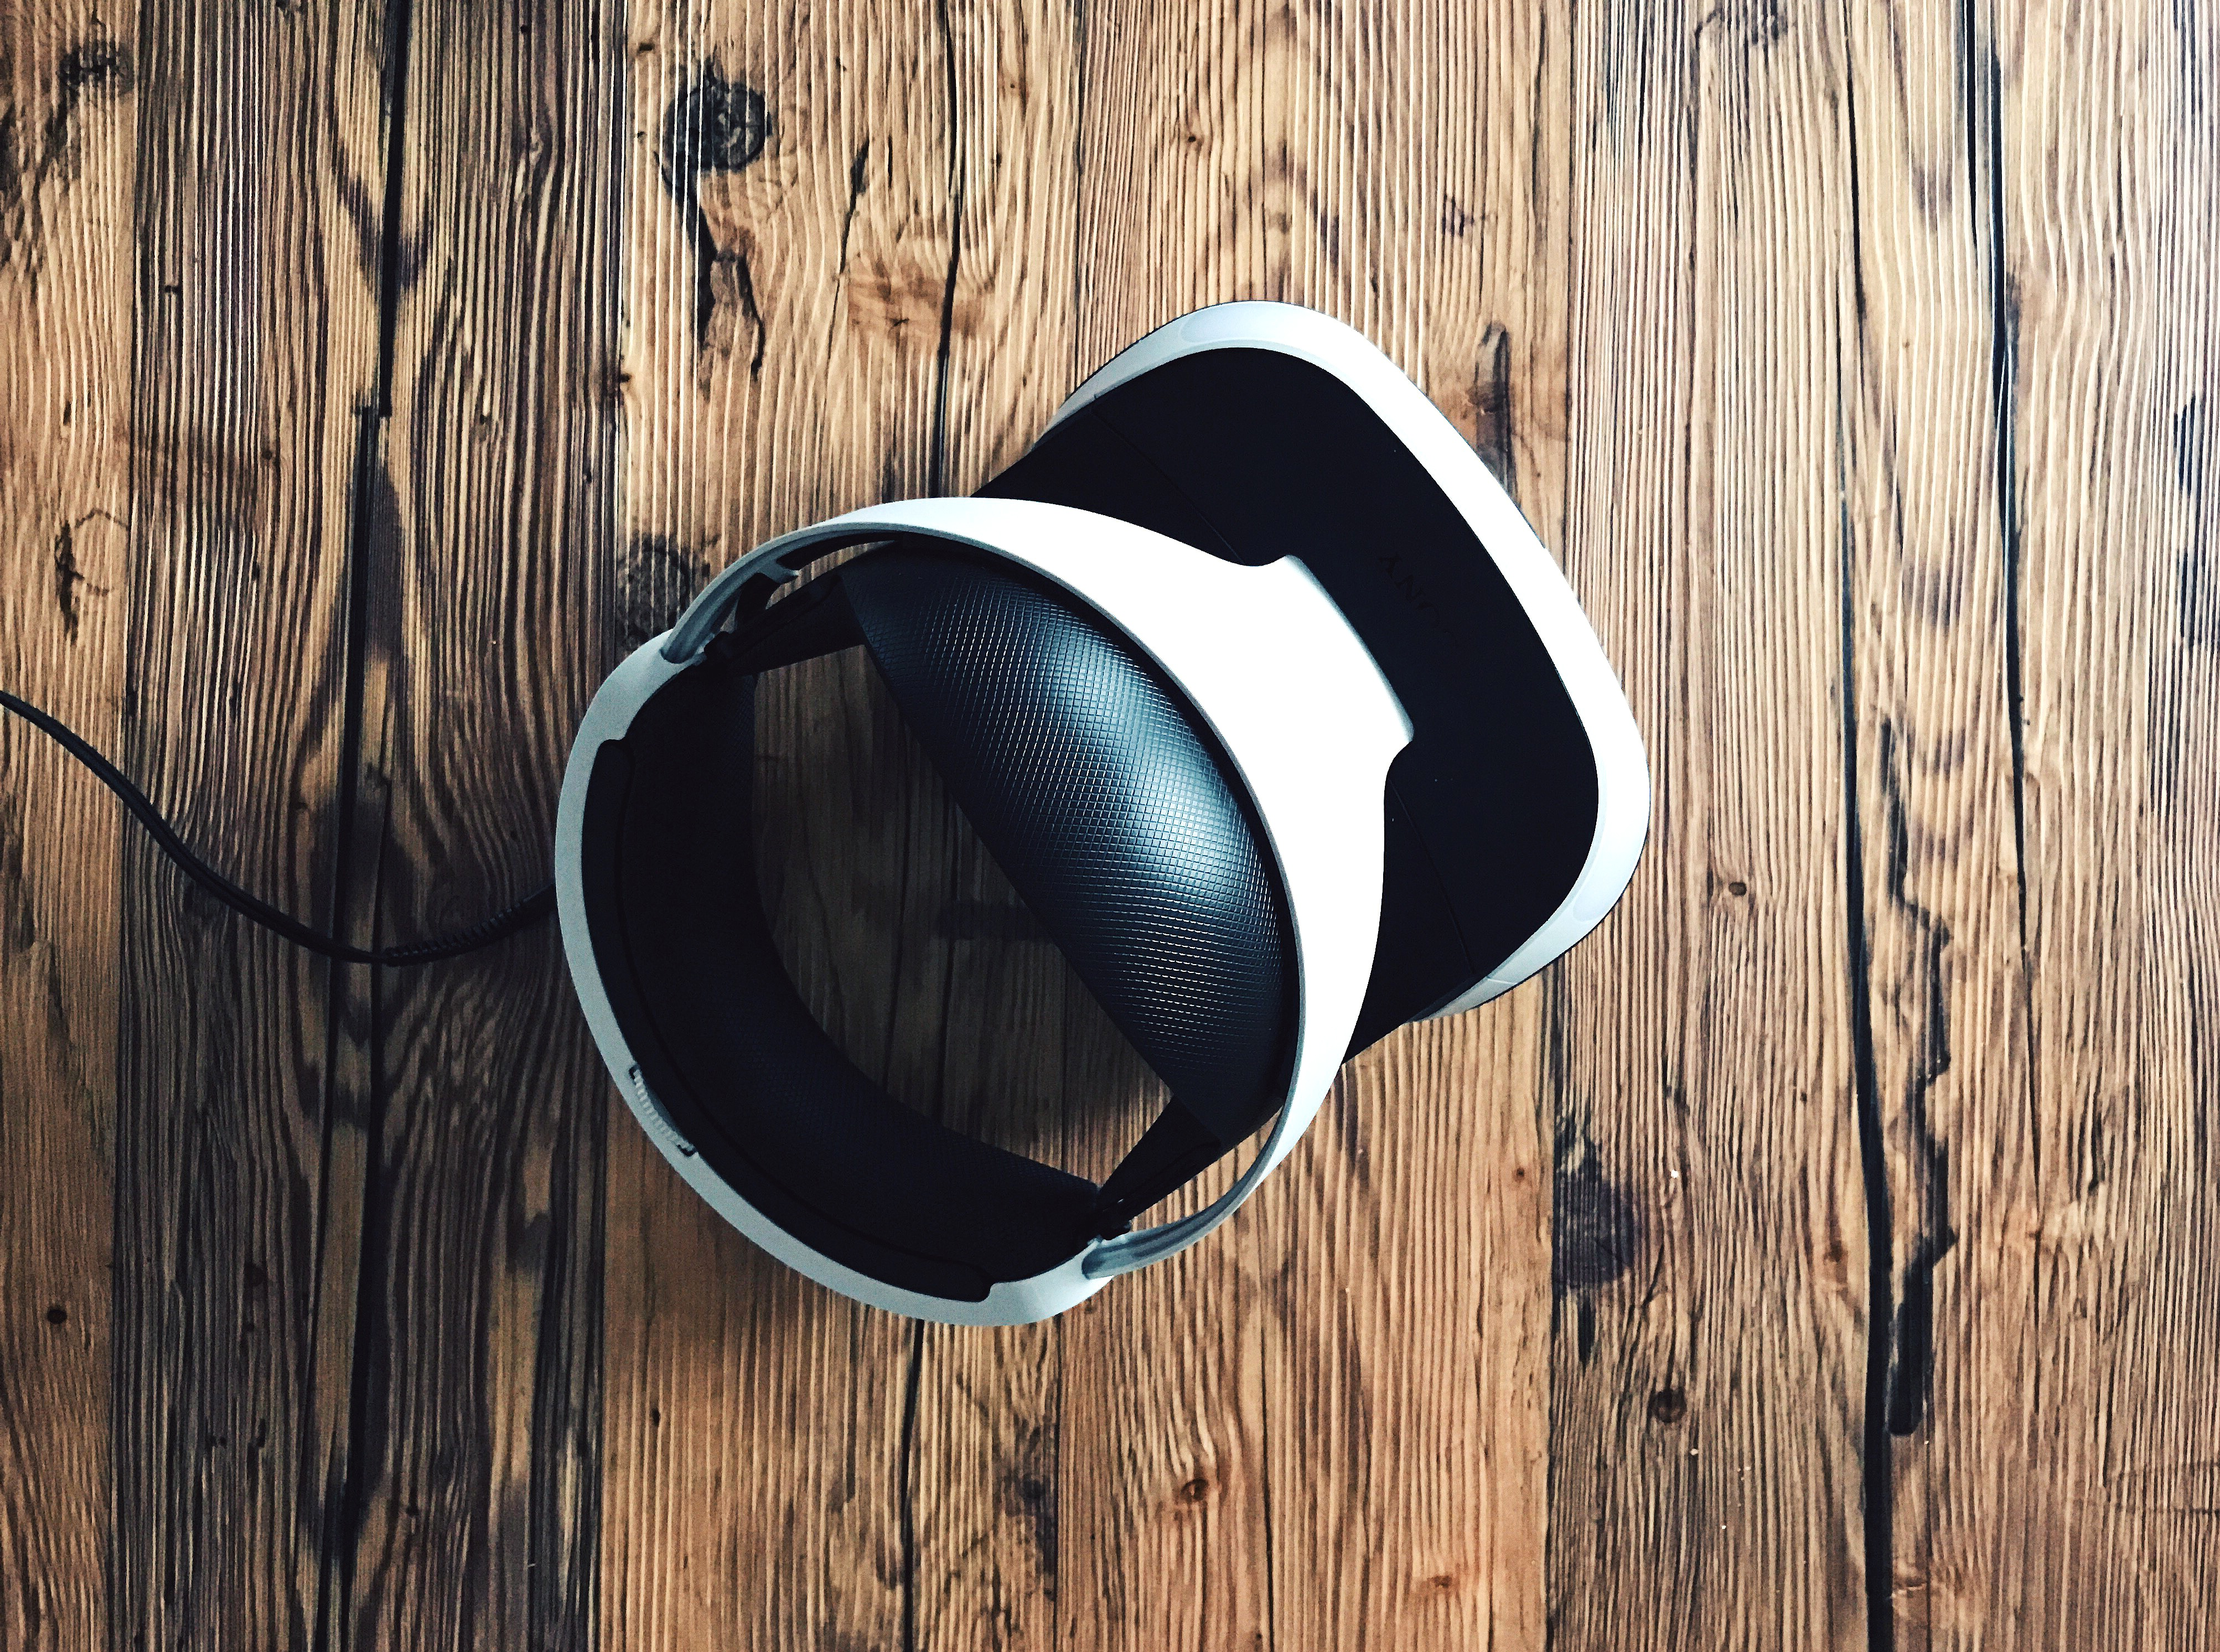 How is VR changing marketing?